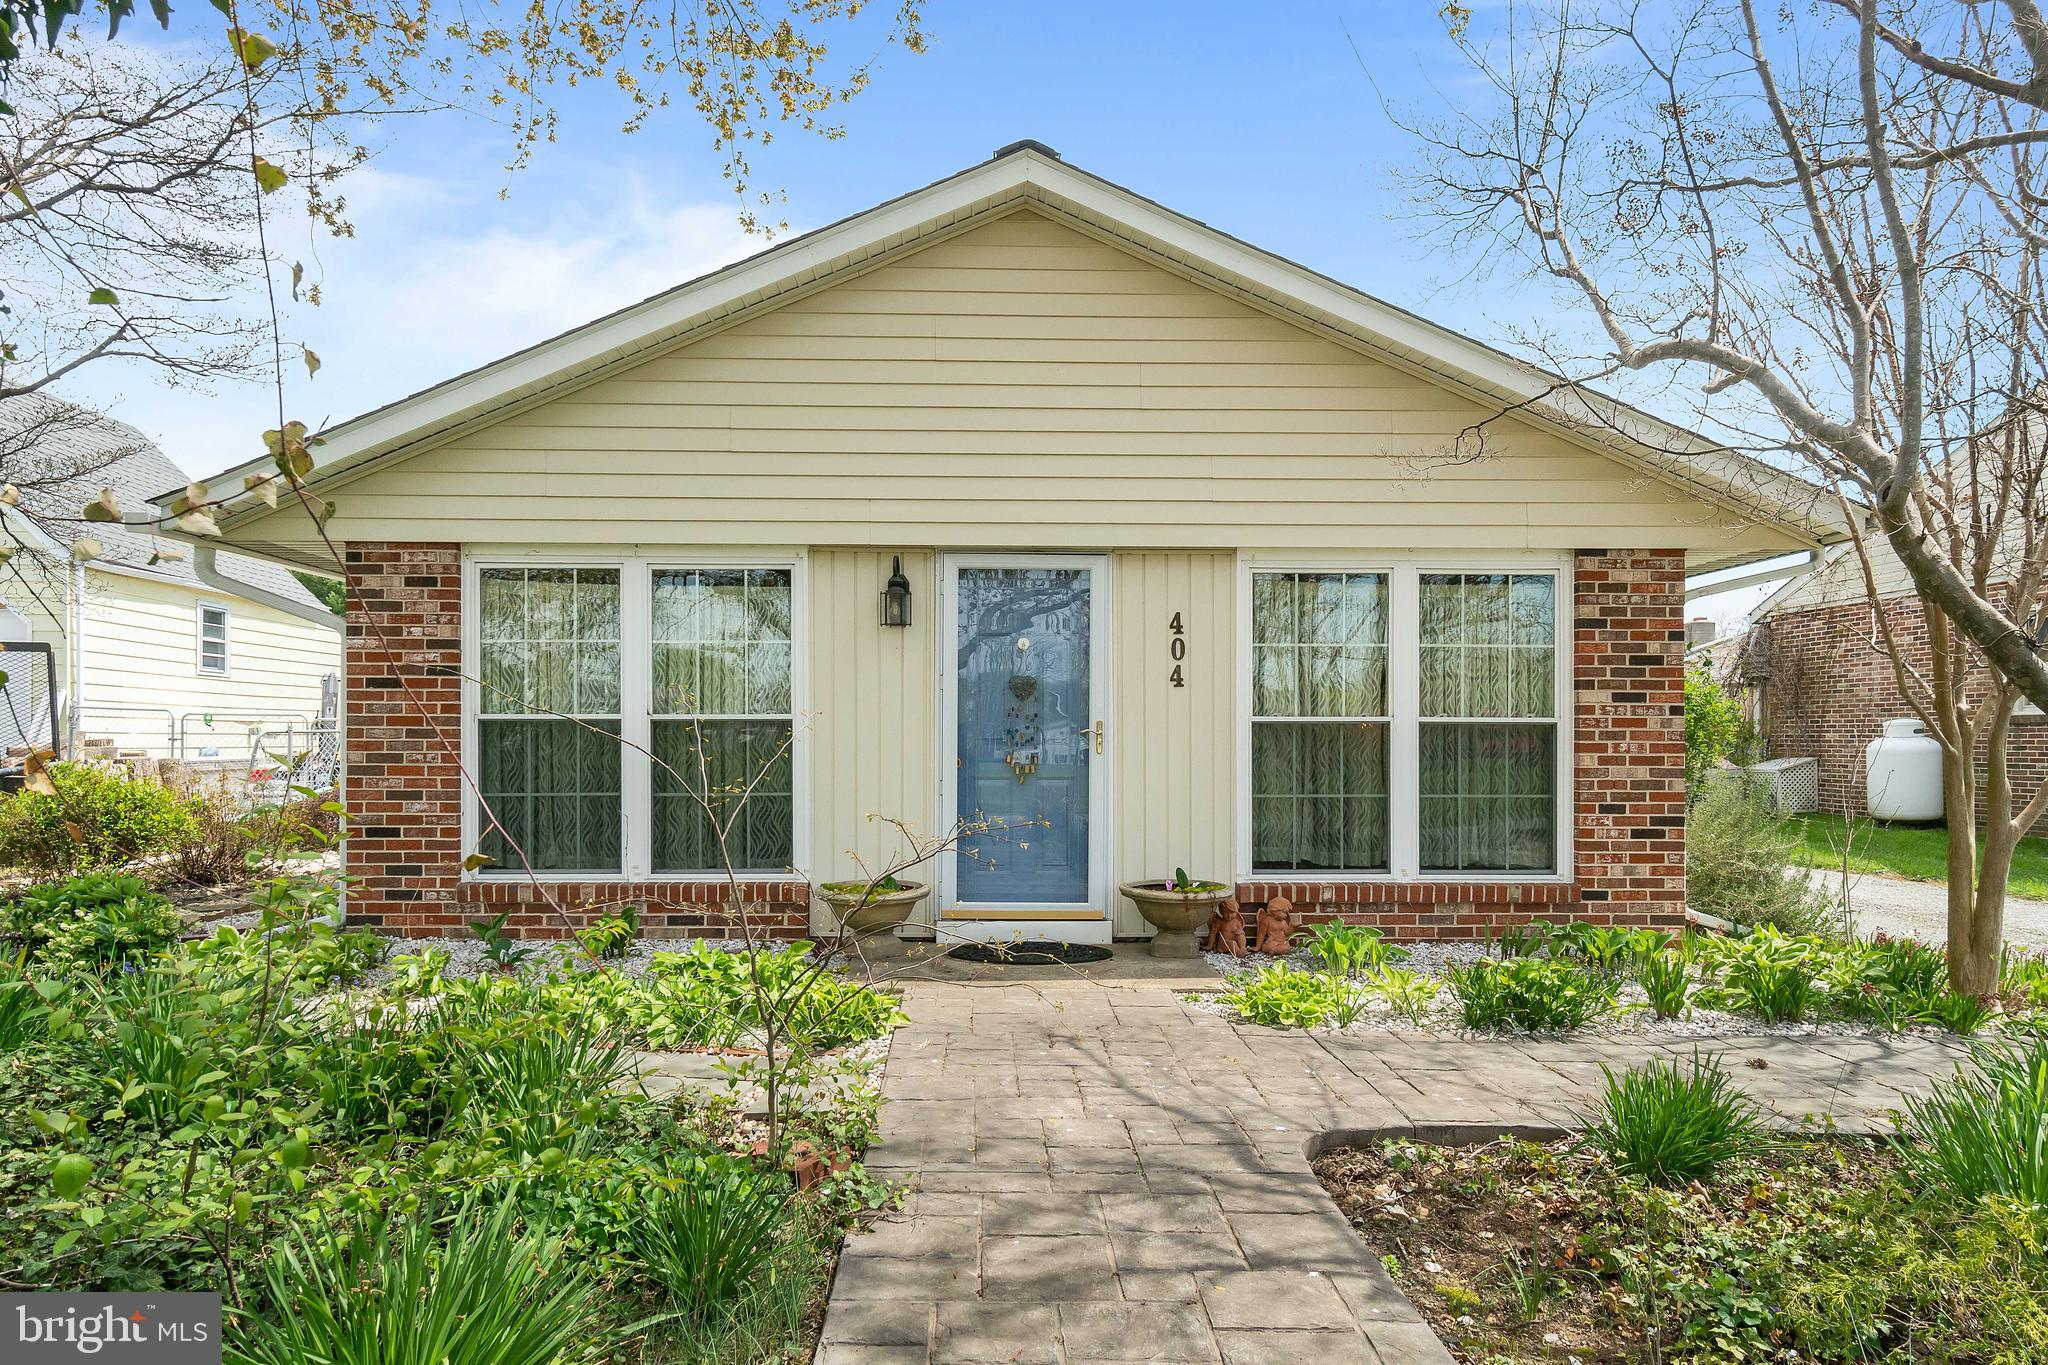 Welcome home to this super cute 3 bedroom, 1.5 bath rancher located in the North East within walking